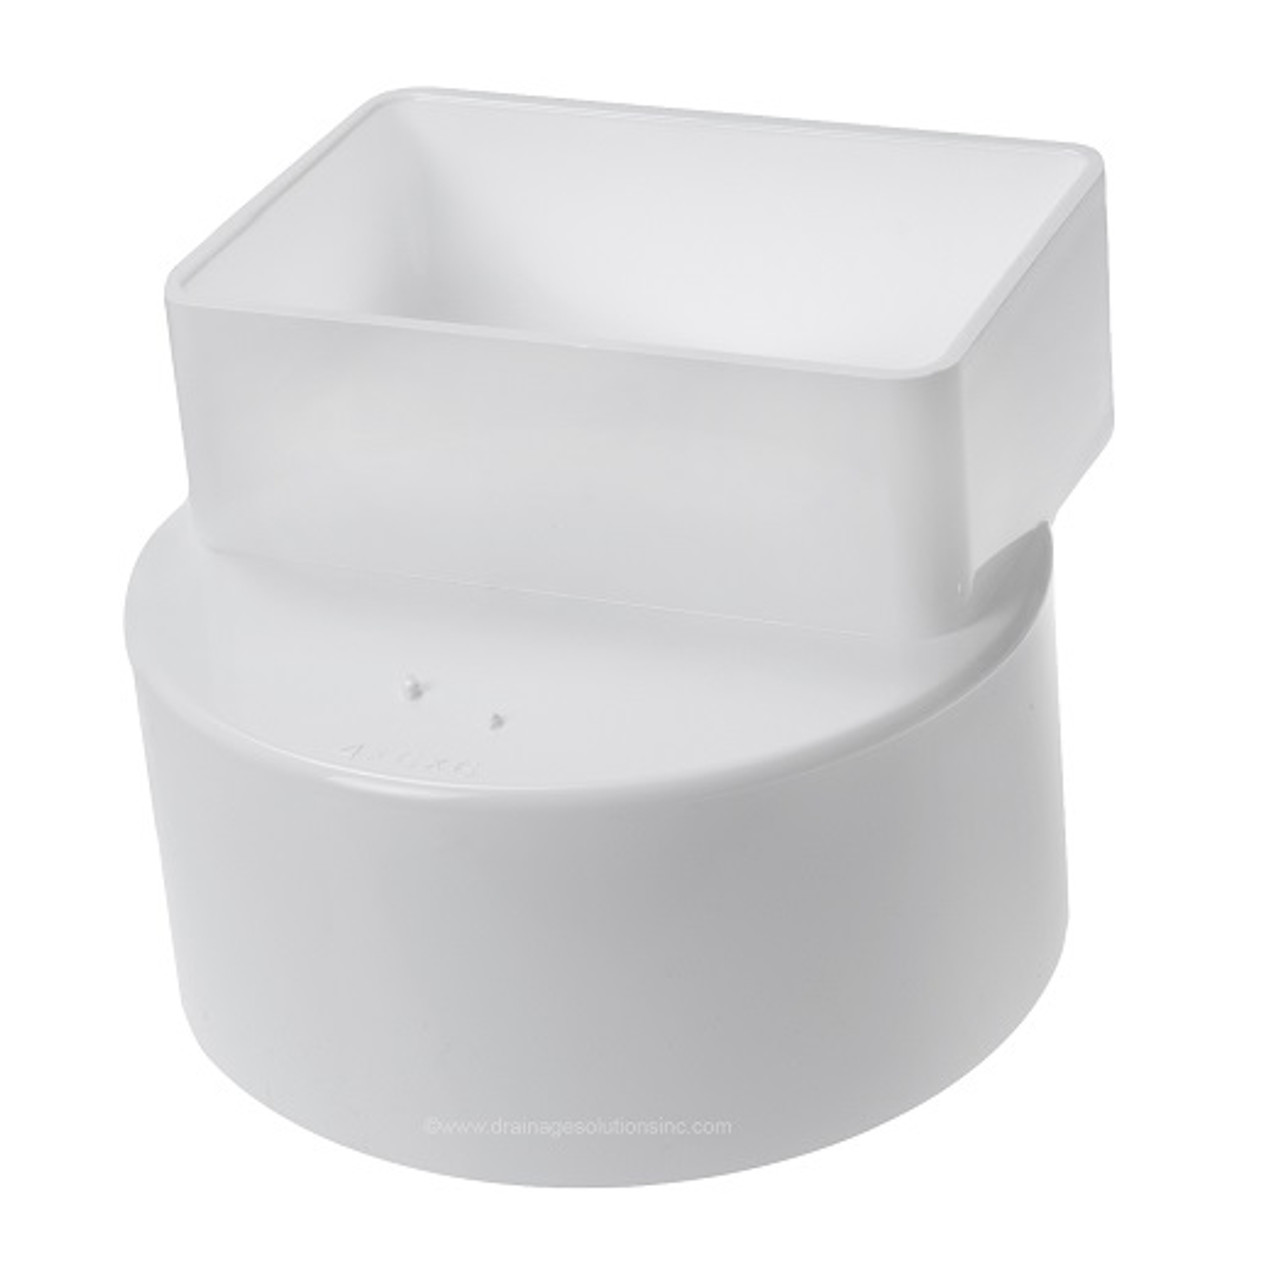 Pvc 4 X 6 X 6 Sdr35 Downspout Adapter Offset Dsa X Hub The Drainage Products Store